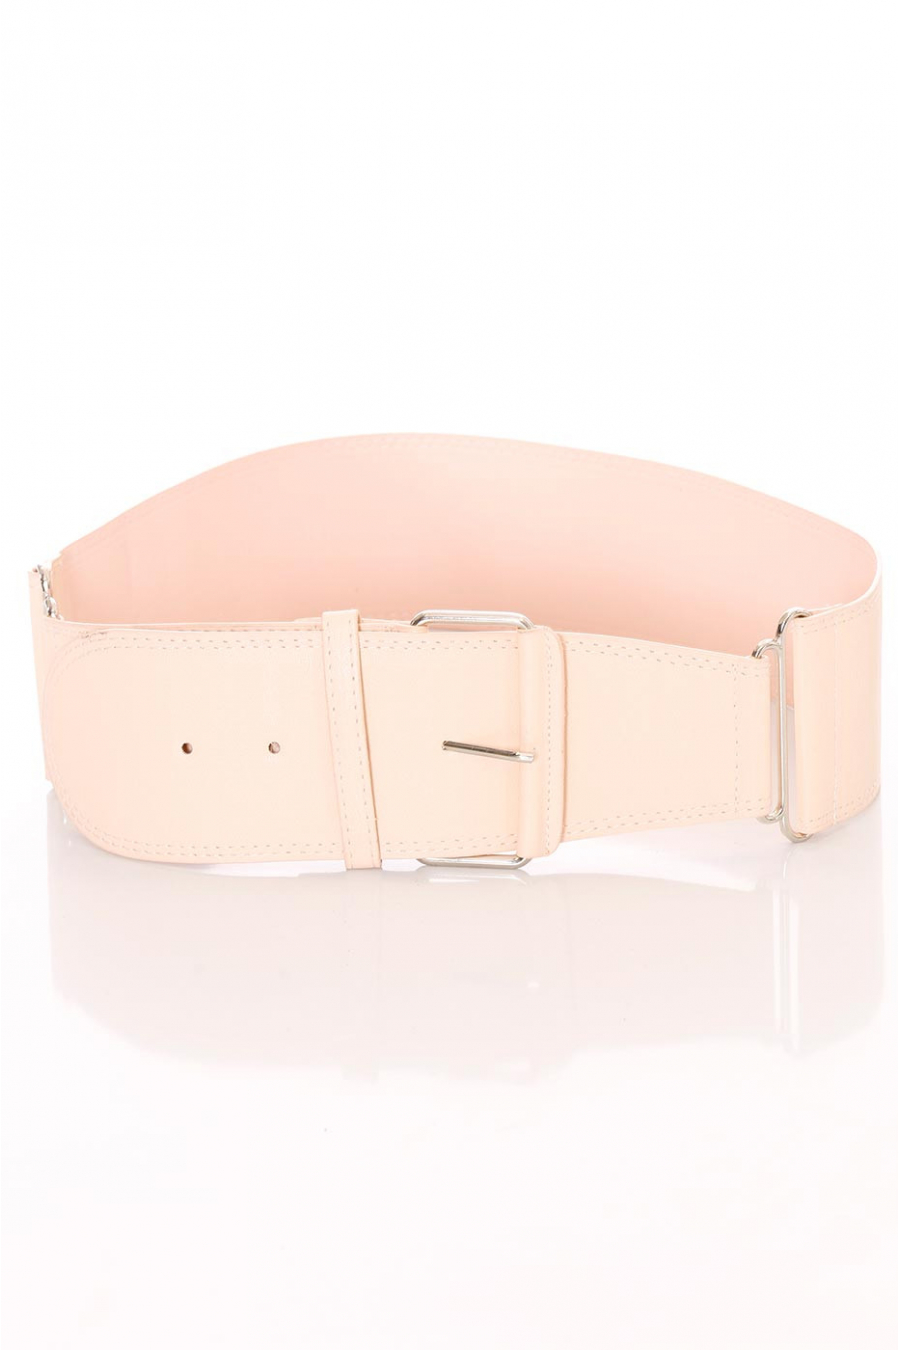 Wide pink belt, rectangle buckle and ties. SG-0418